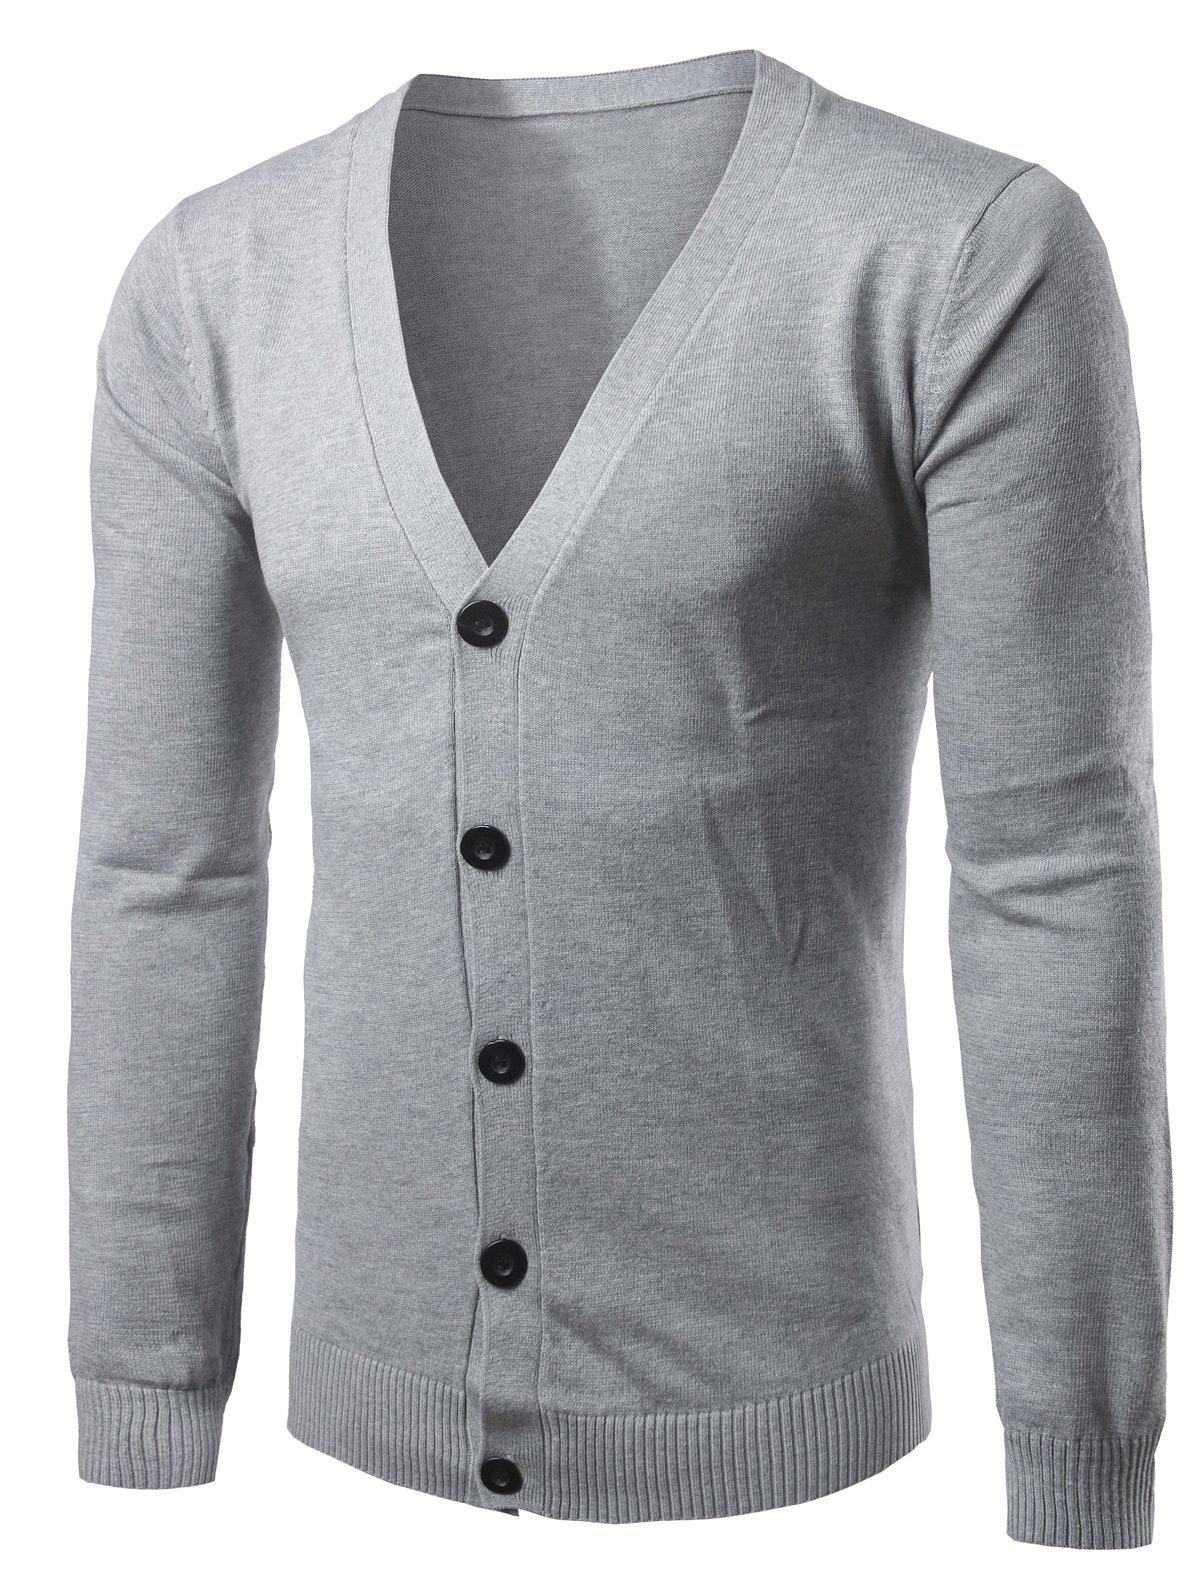 Slim Fit V Neck Button Up Cardigan - GRAY M